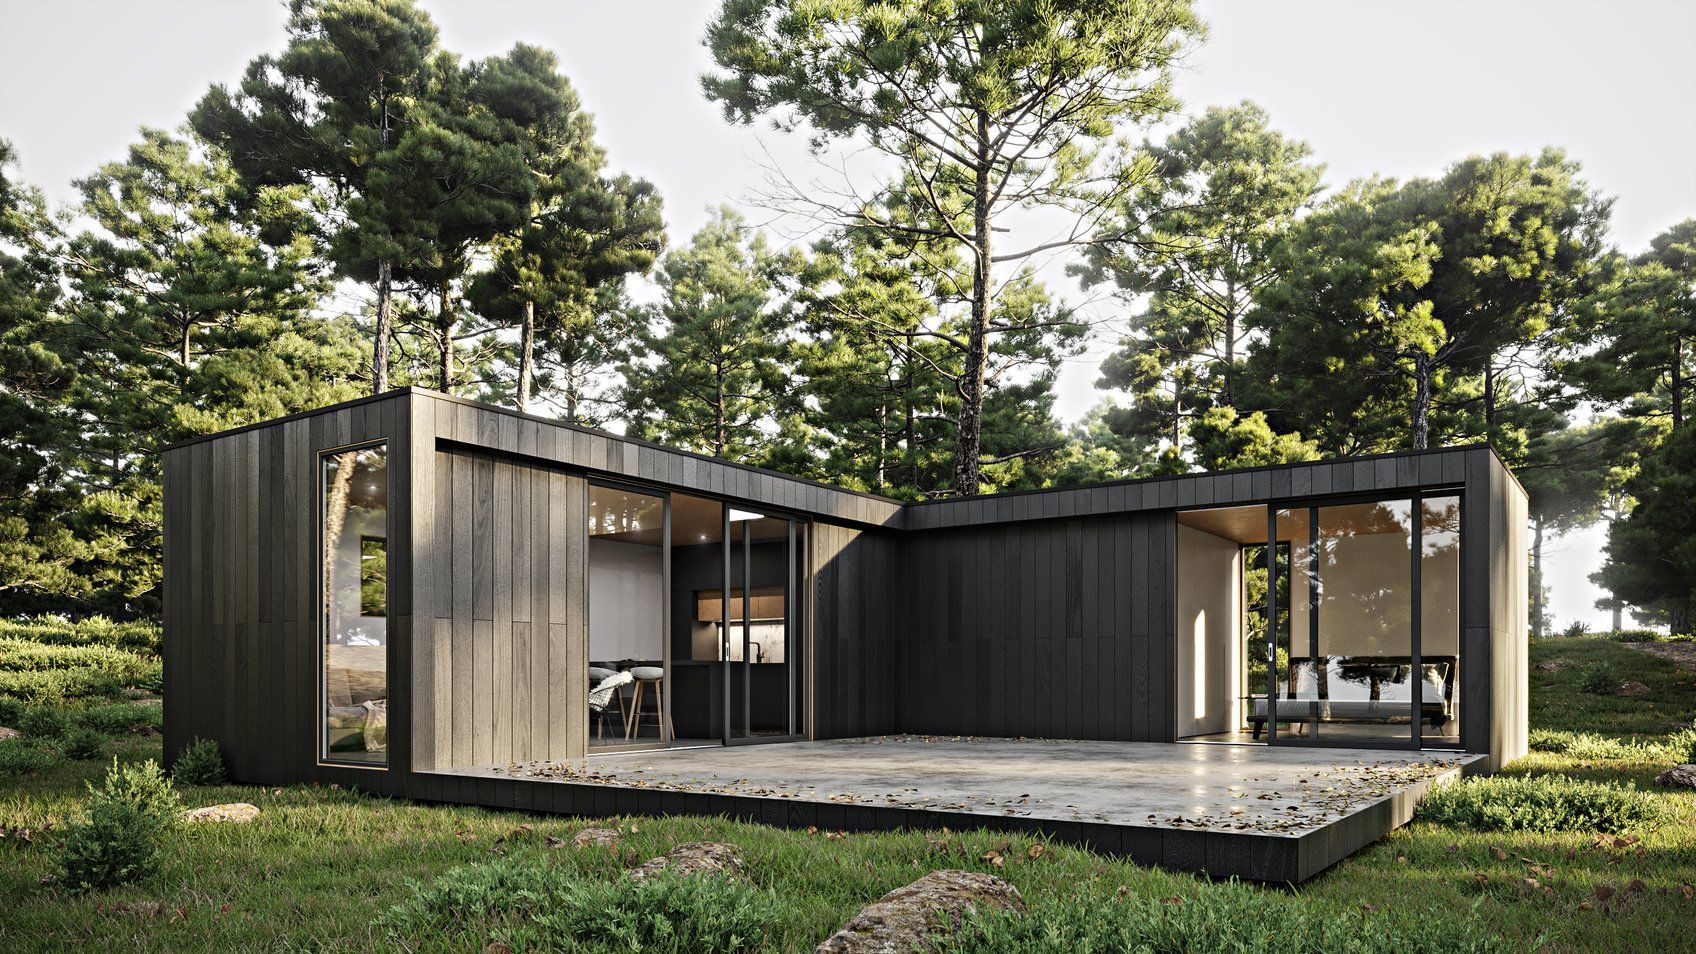 Nook Nz Nook Nz Transportable Homes Cabins Auckland House Shiplap Cladding Open Plan Living Room